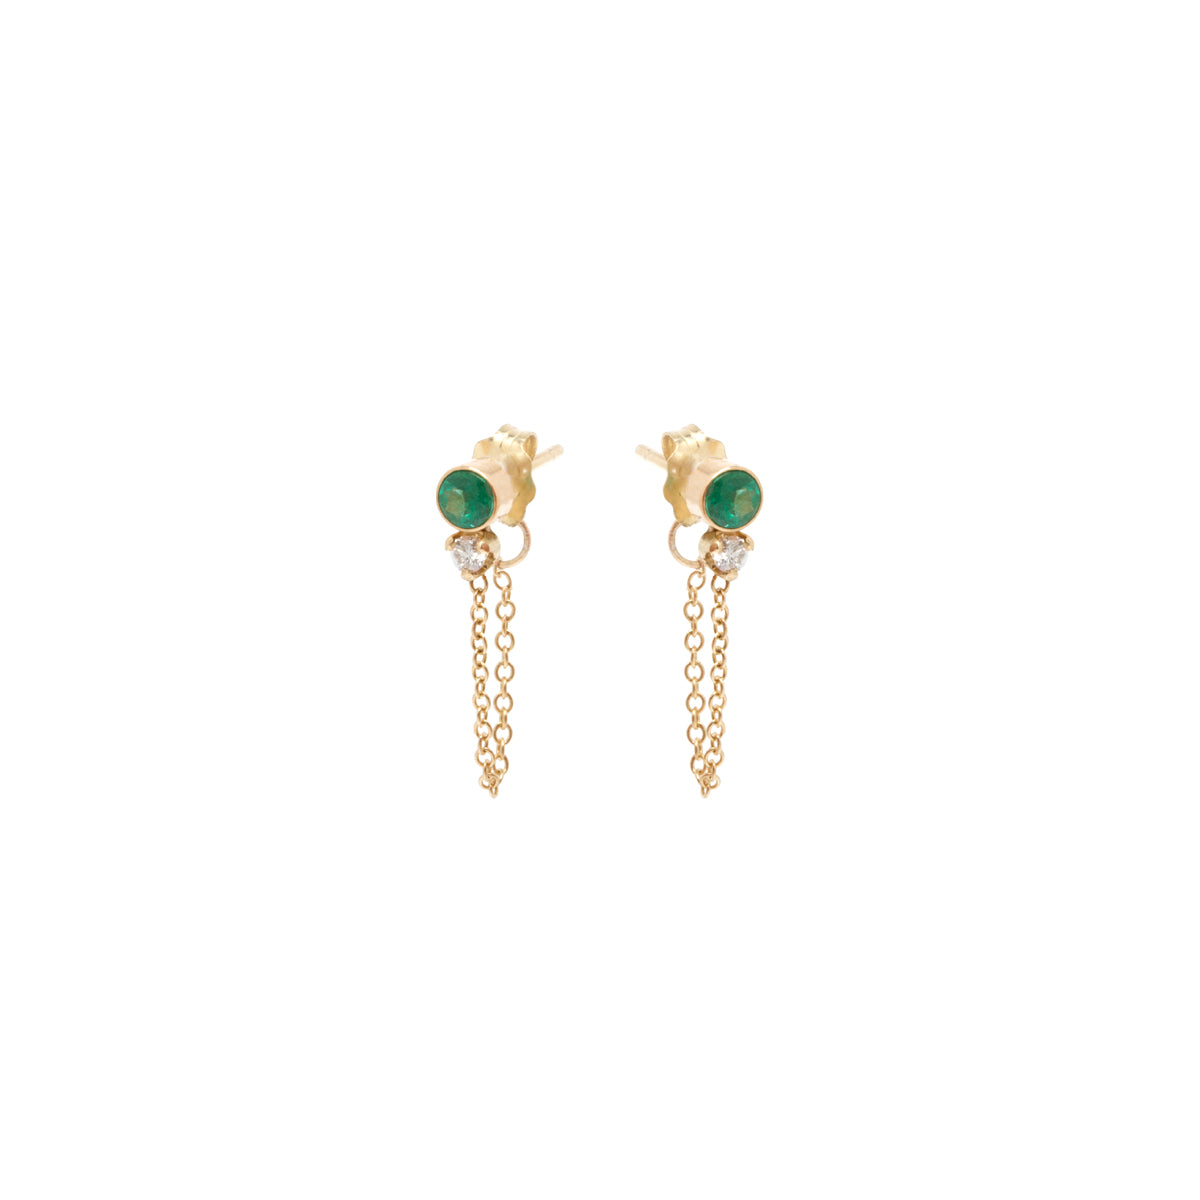 14k emerald and diamond chain stud earrings